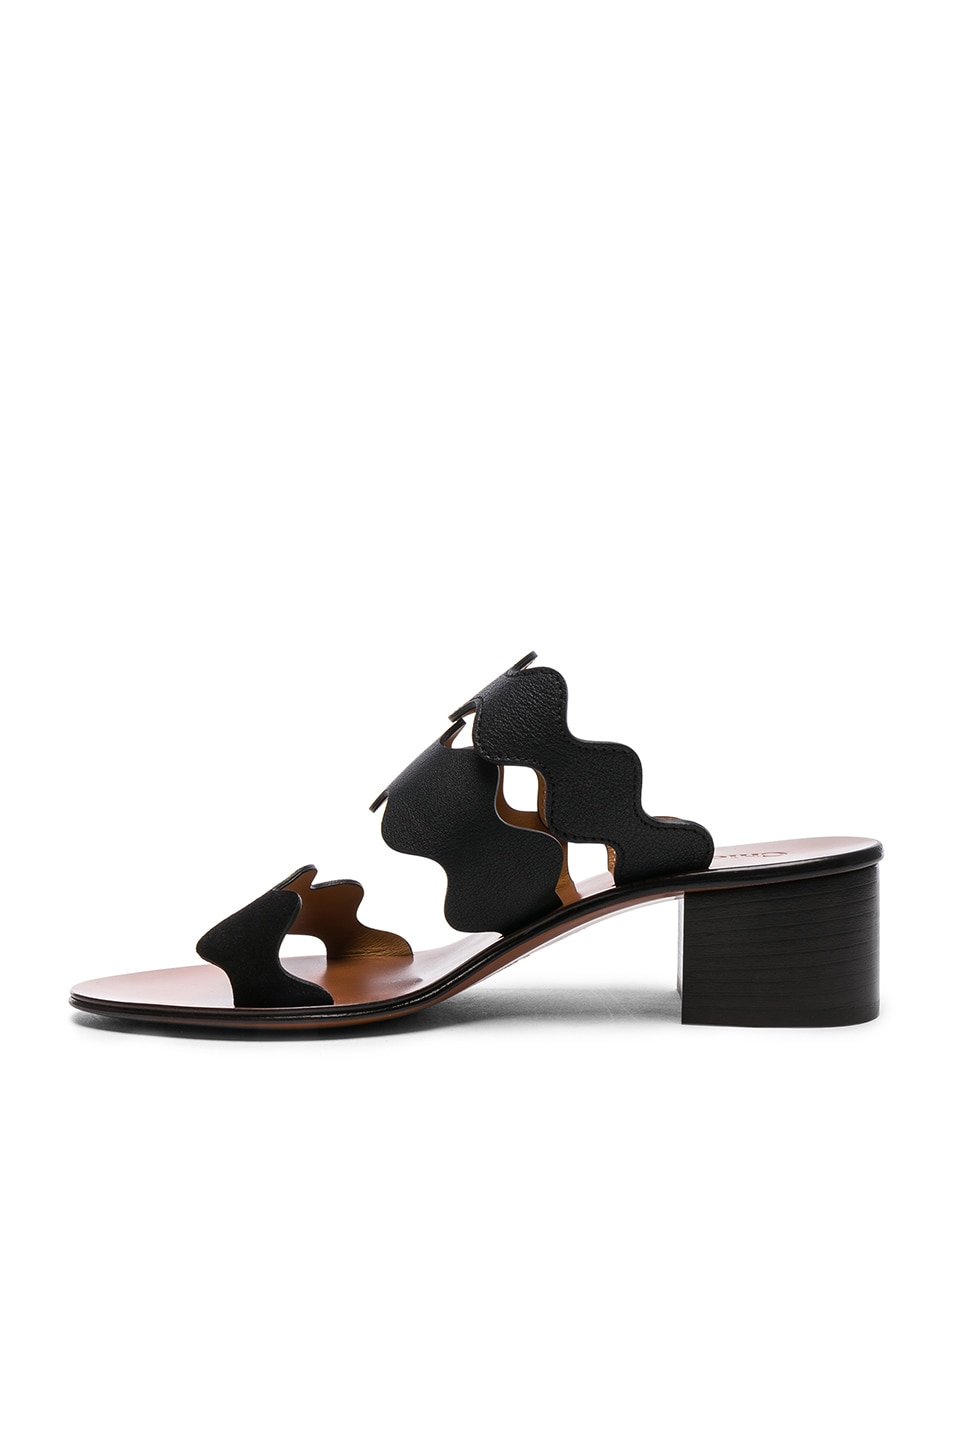 Image 5 of Chloe Lauren Leather & Suede Sandals in Black